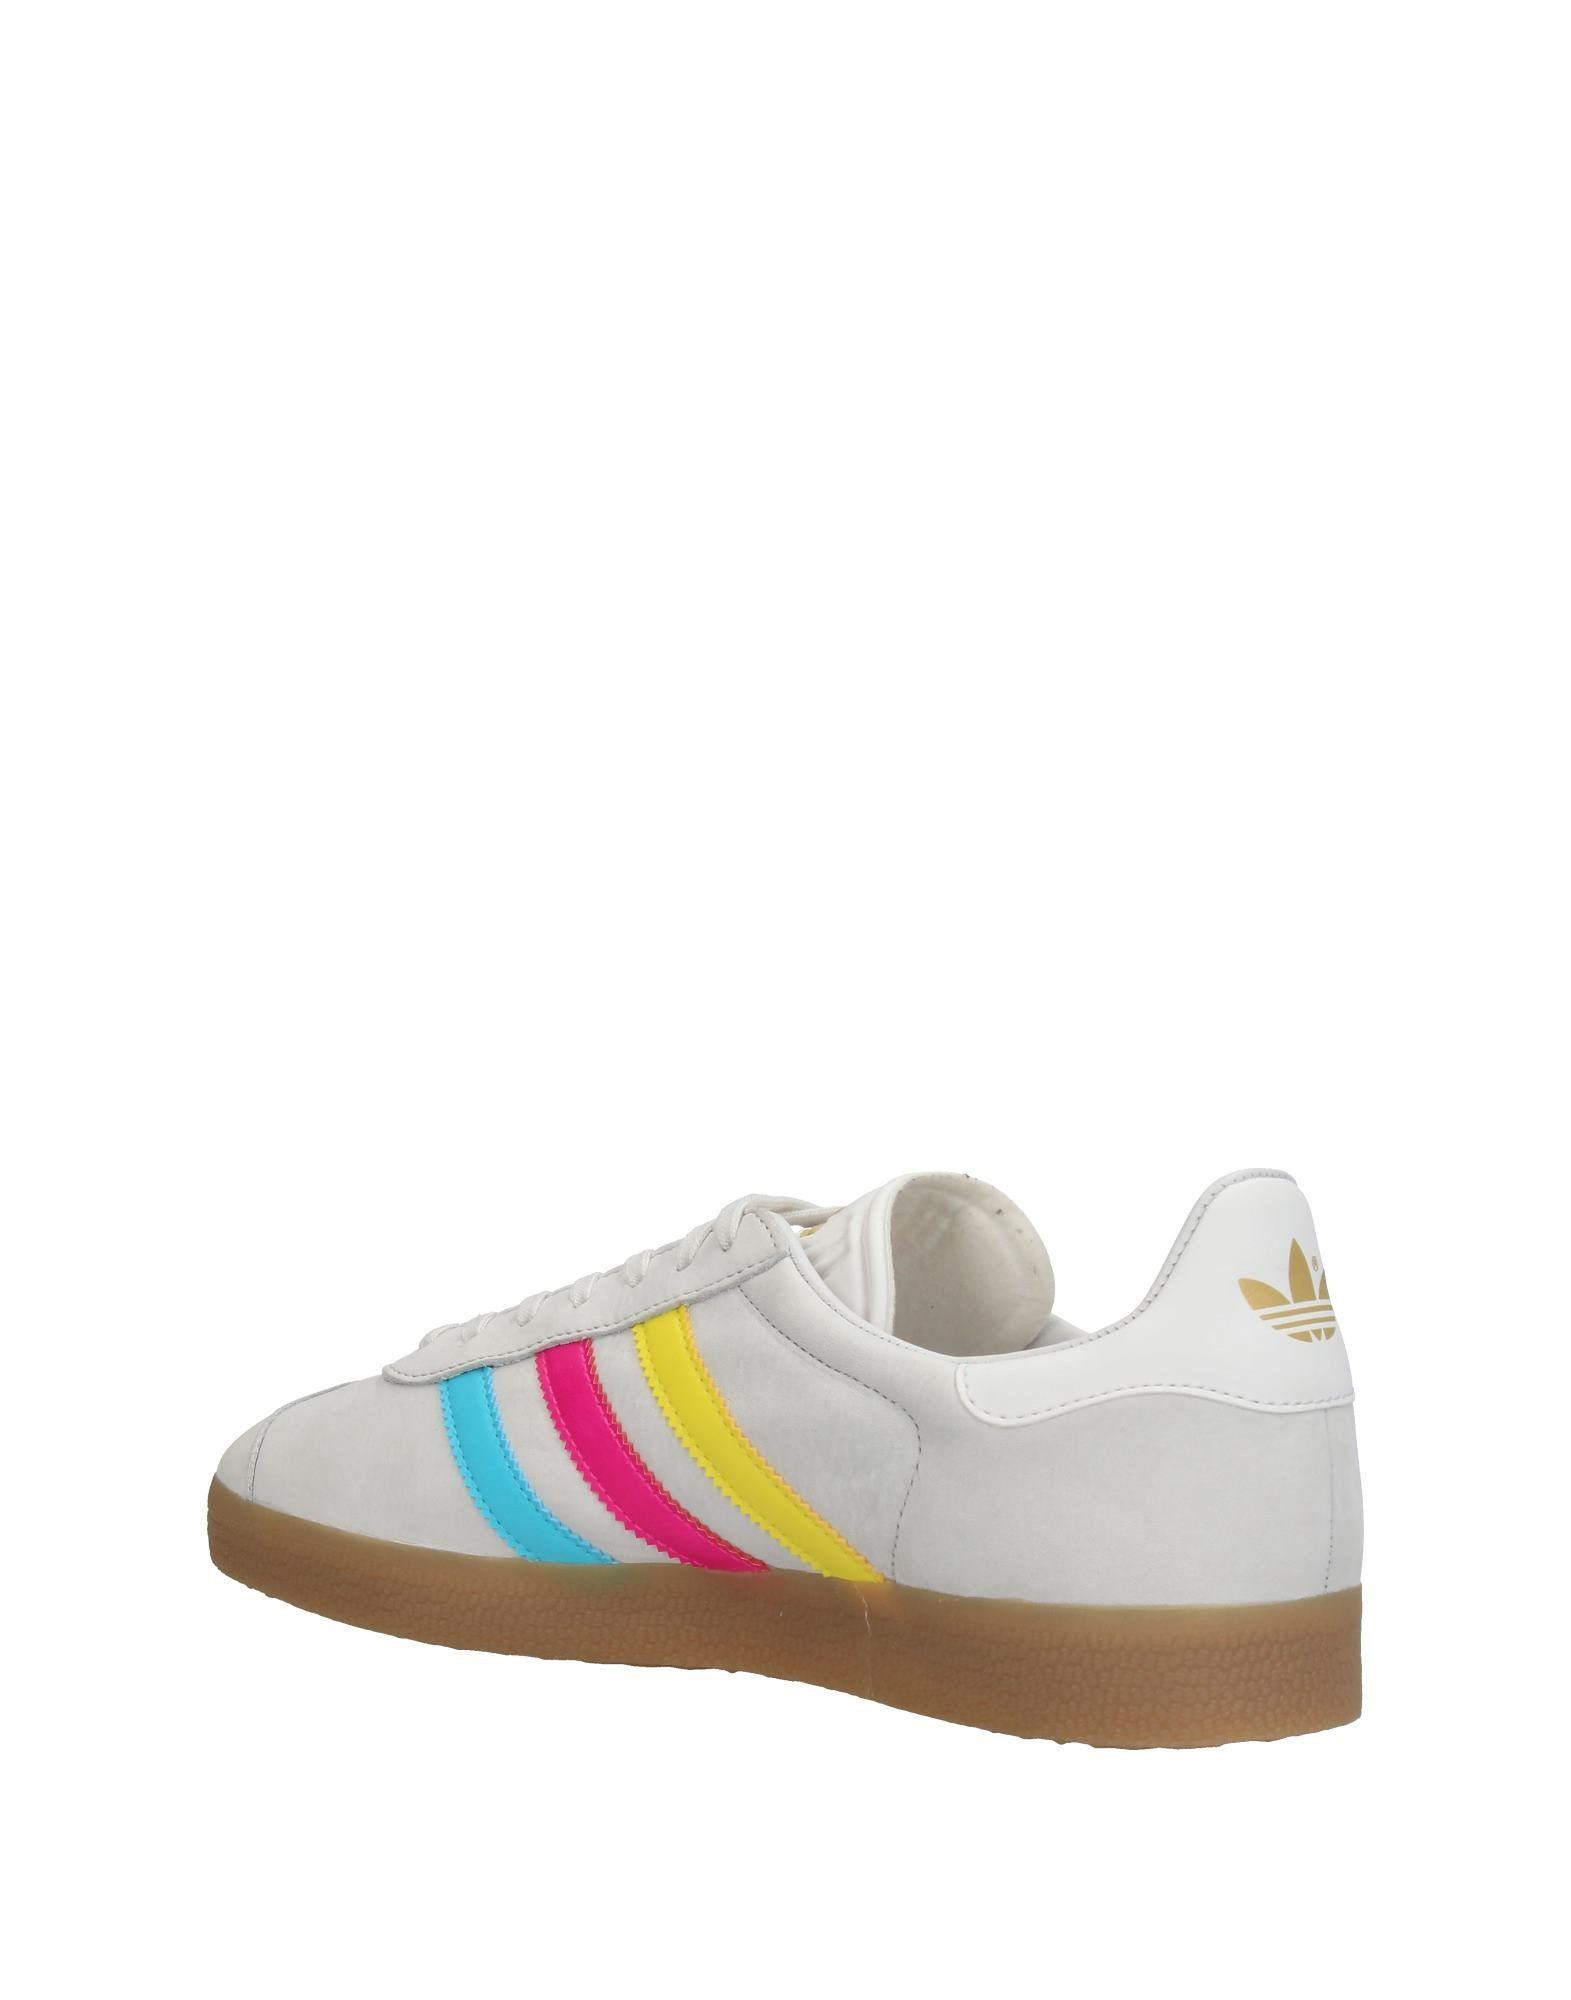 Sneakers 11384301LR Adidas Originals Uomo - 11384301LR Sneakers 163975